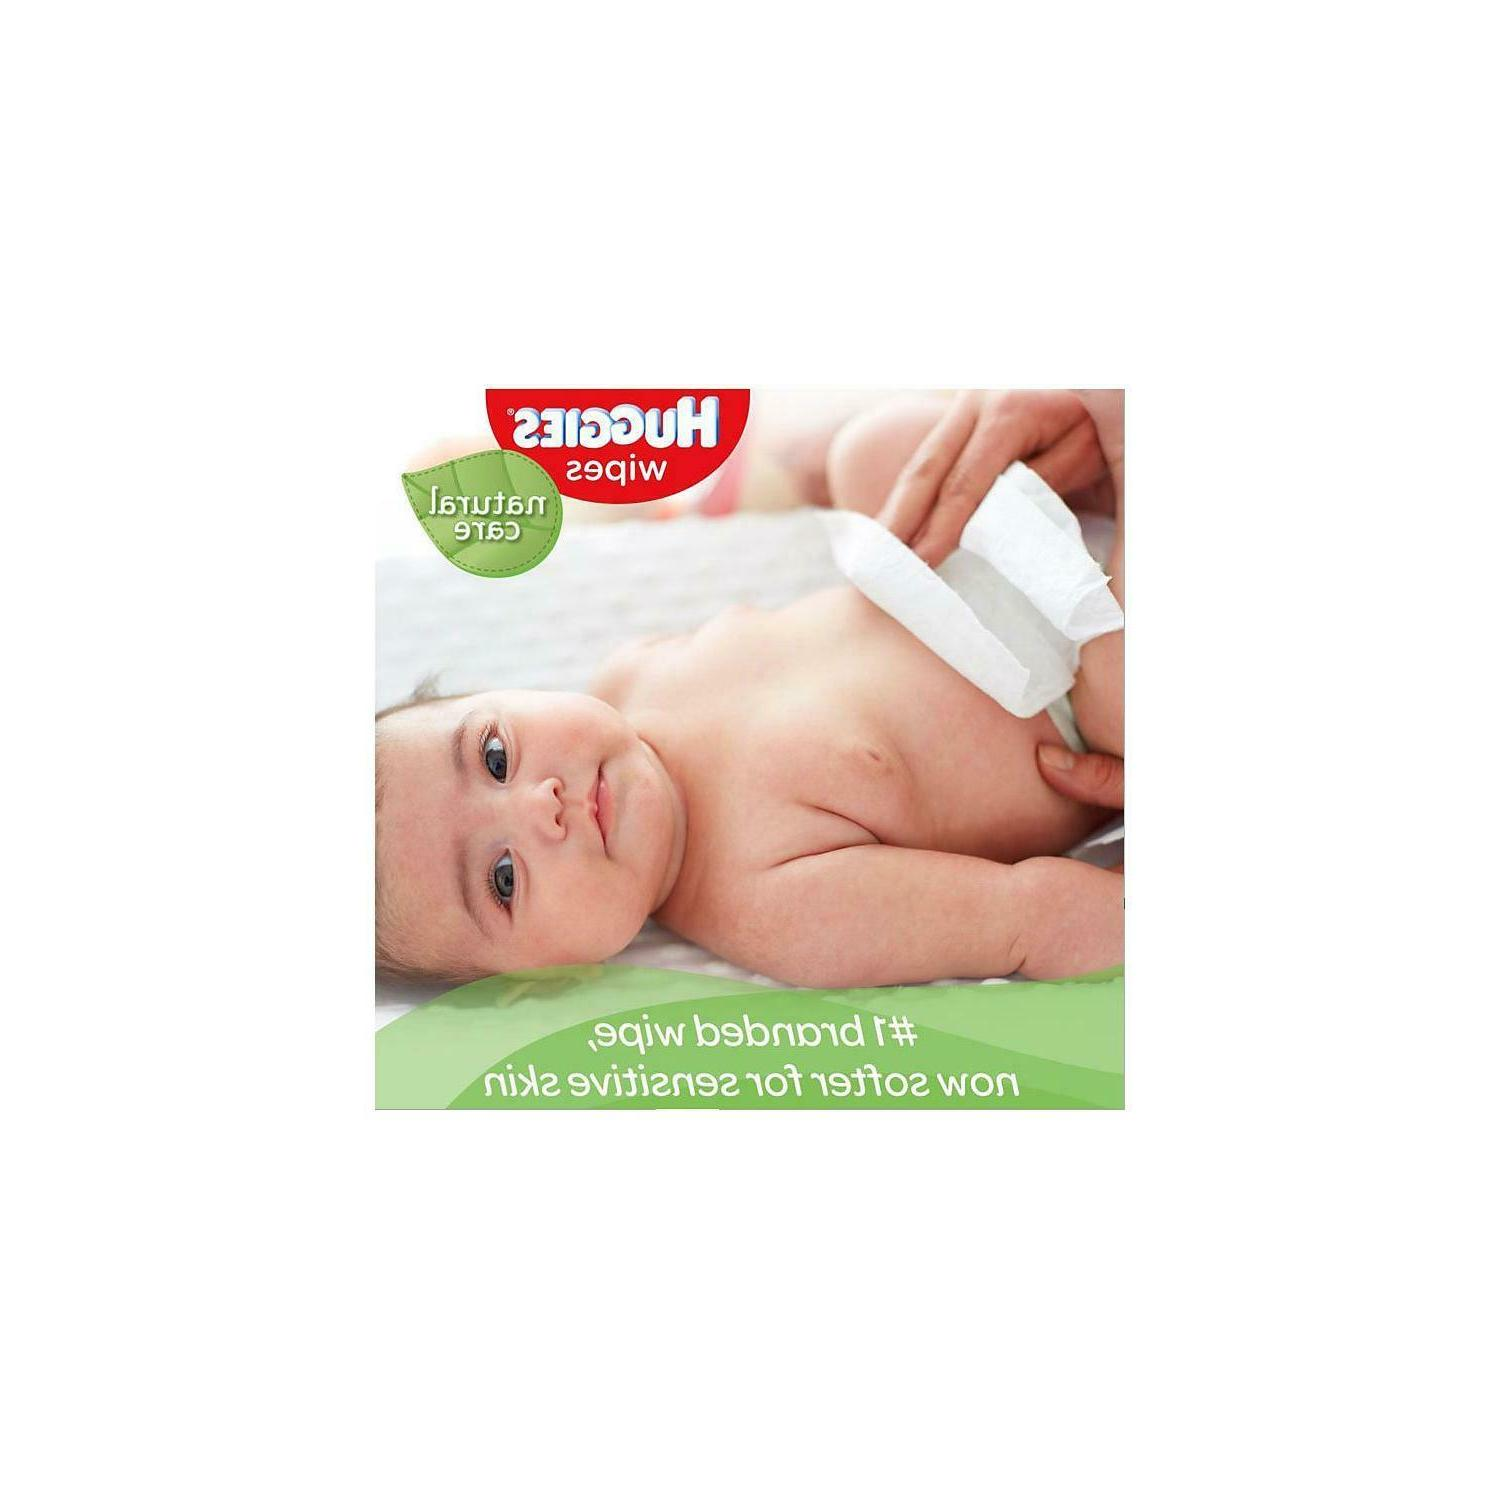 Huggies Baby Wipe Fragrance Alcohol Free